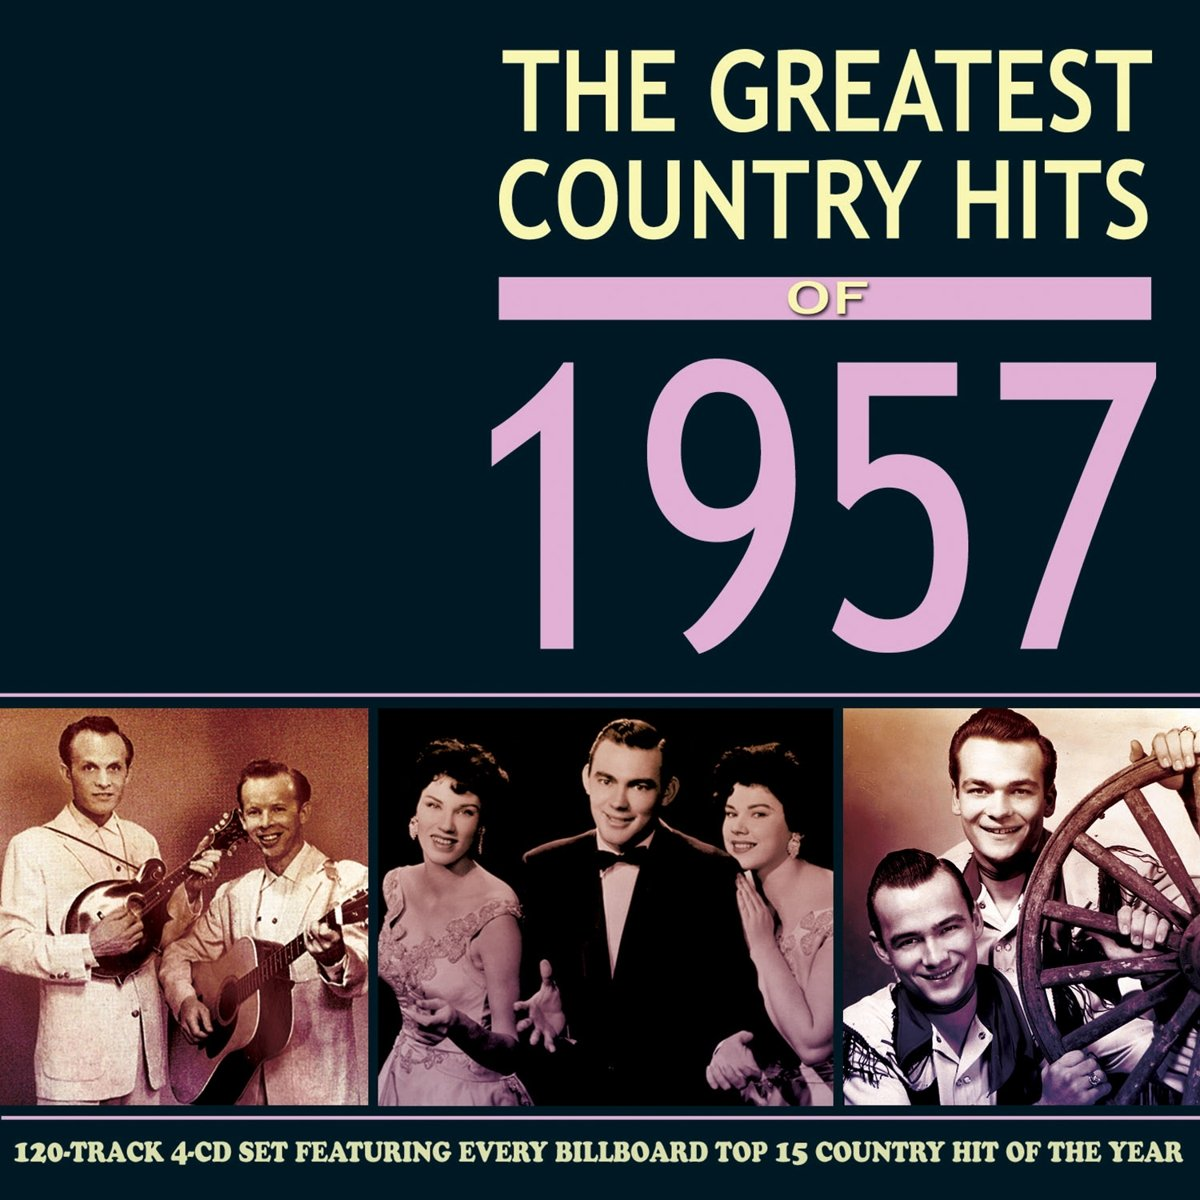 CD : VARIOUS ARTISTS - Greatest Country Hits Of 1957 / Various (4PC)